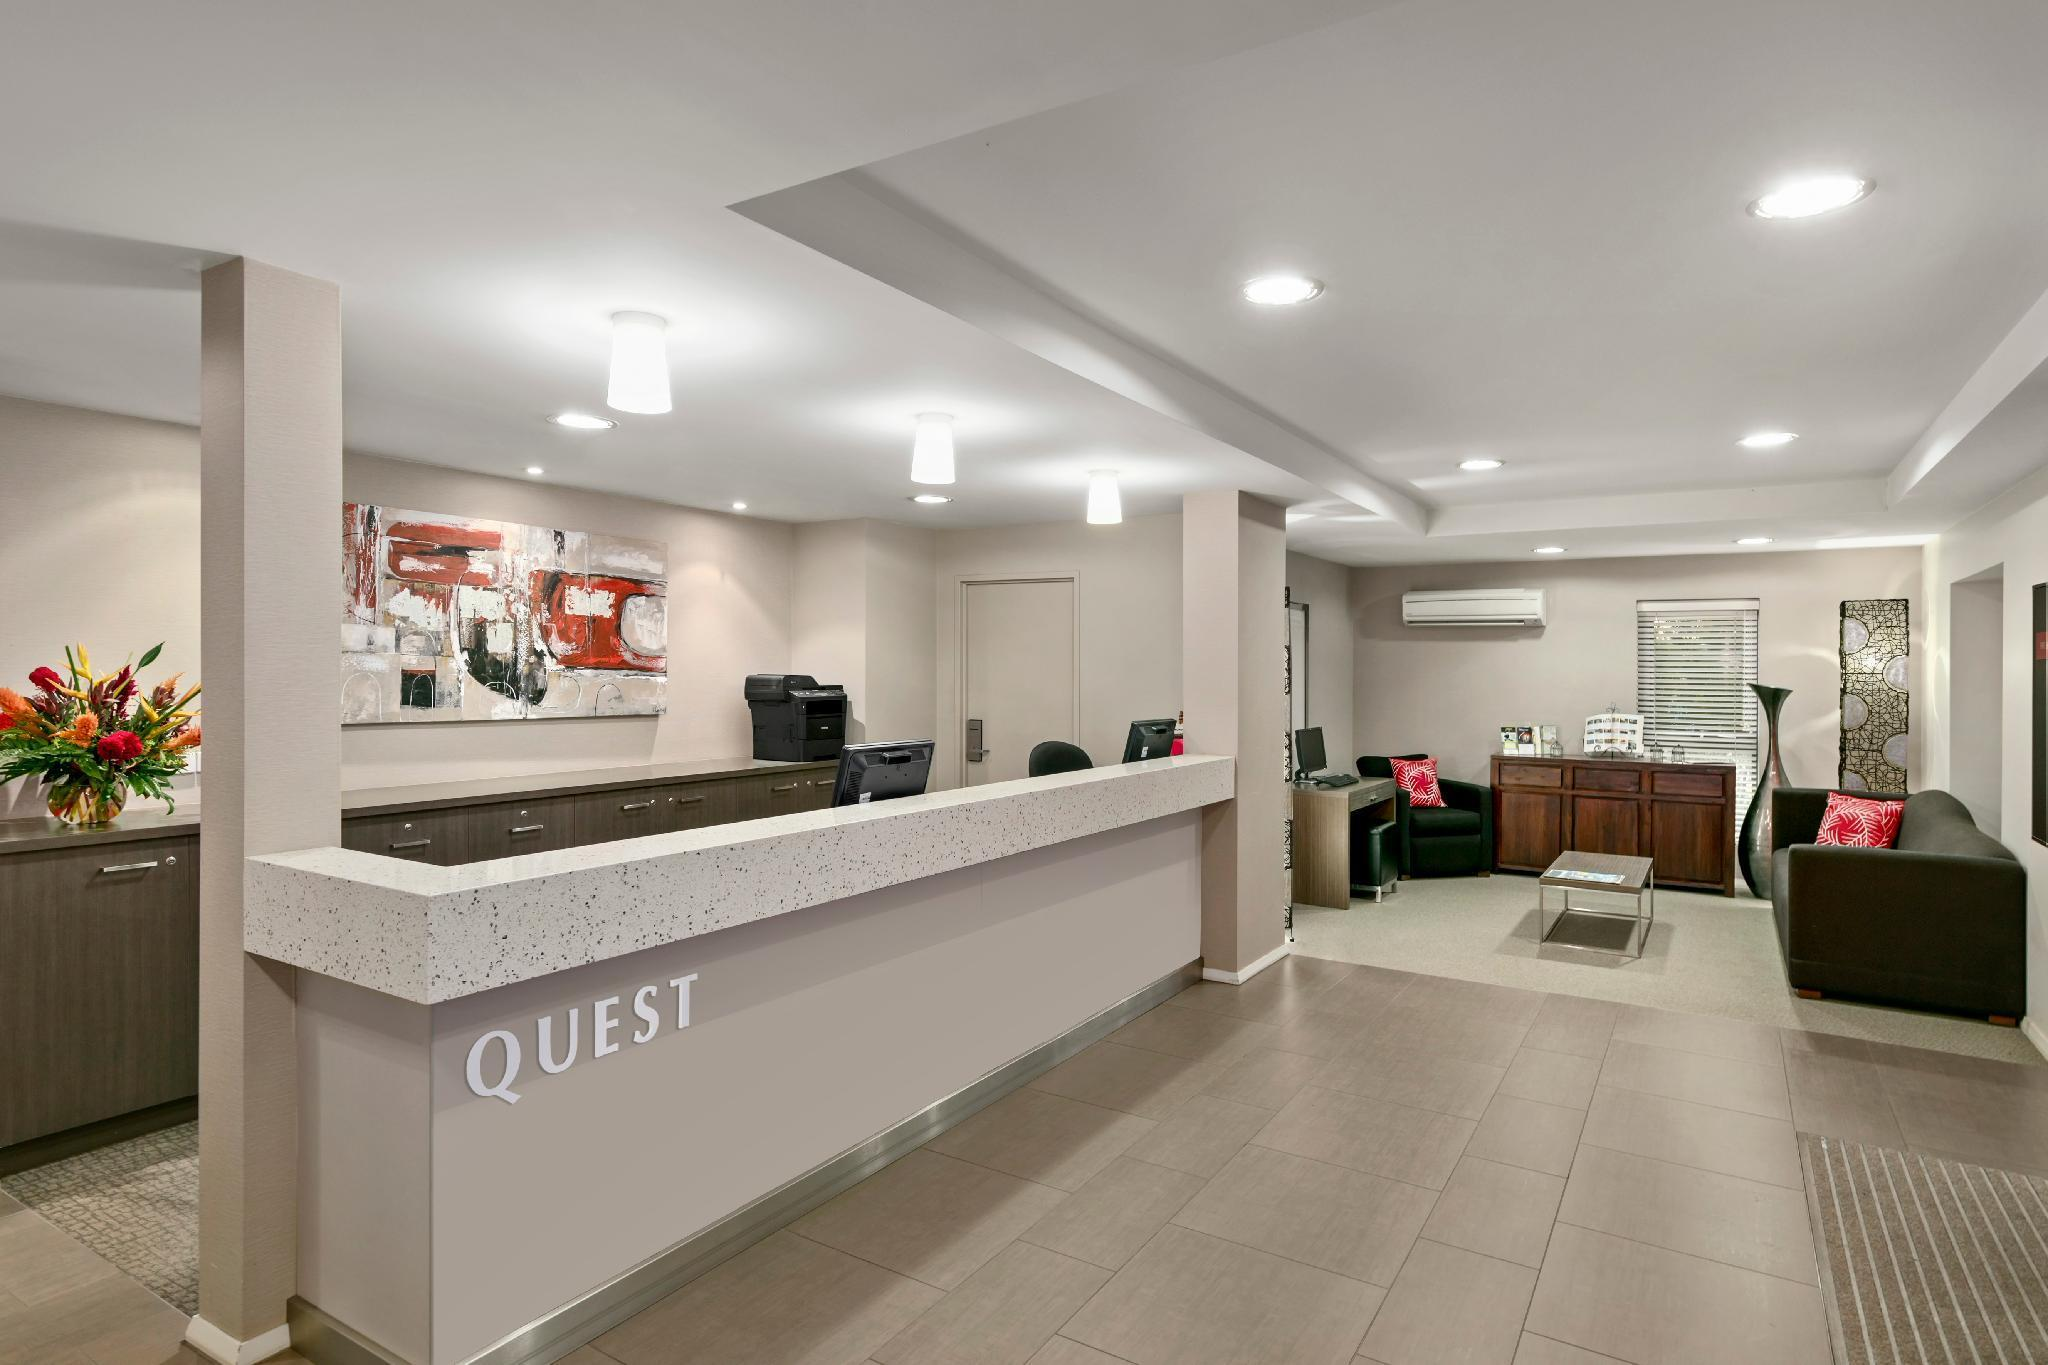 Quest Singleton Serviced Apartments, Singleton